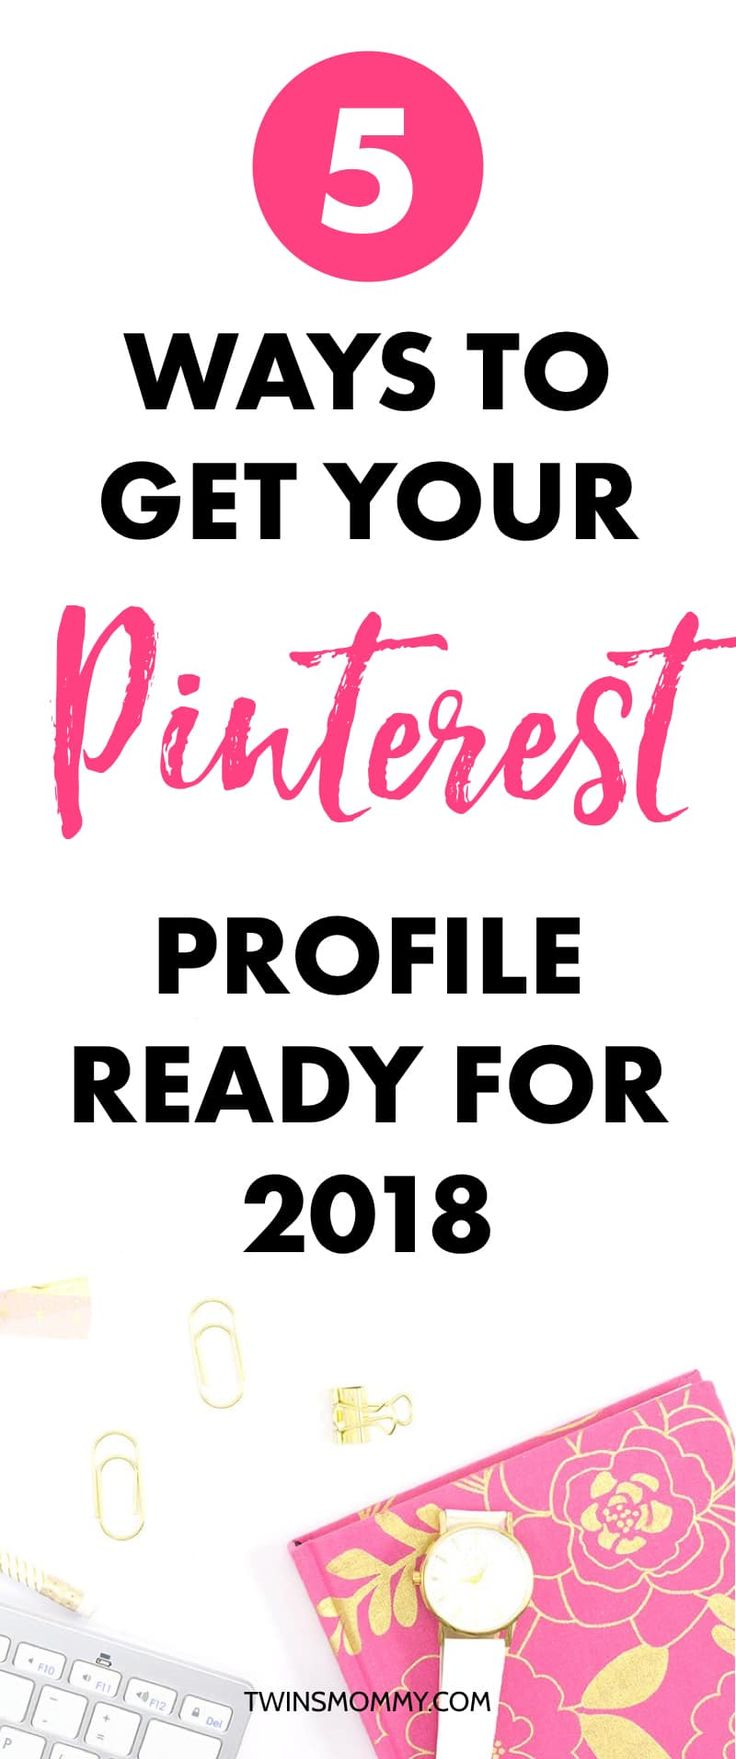 How to get your Pinterest profile ready for 2018   Want to skyrocket your Pinterest traffic this year? Use these Pinterest tips today >>>